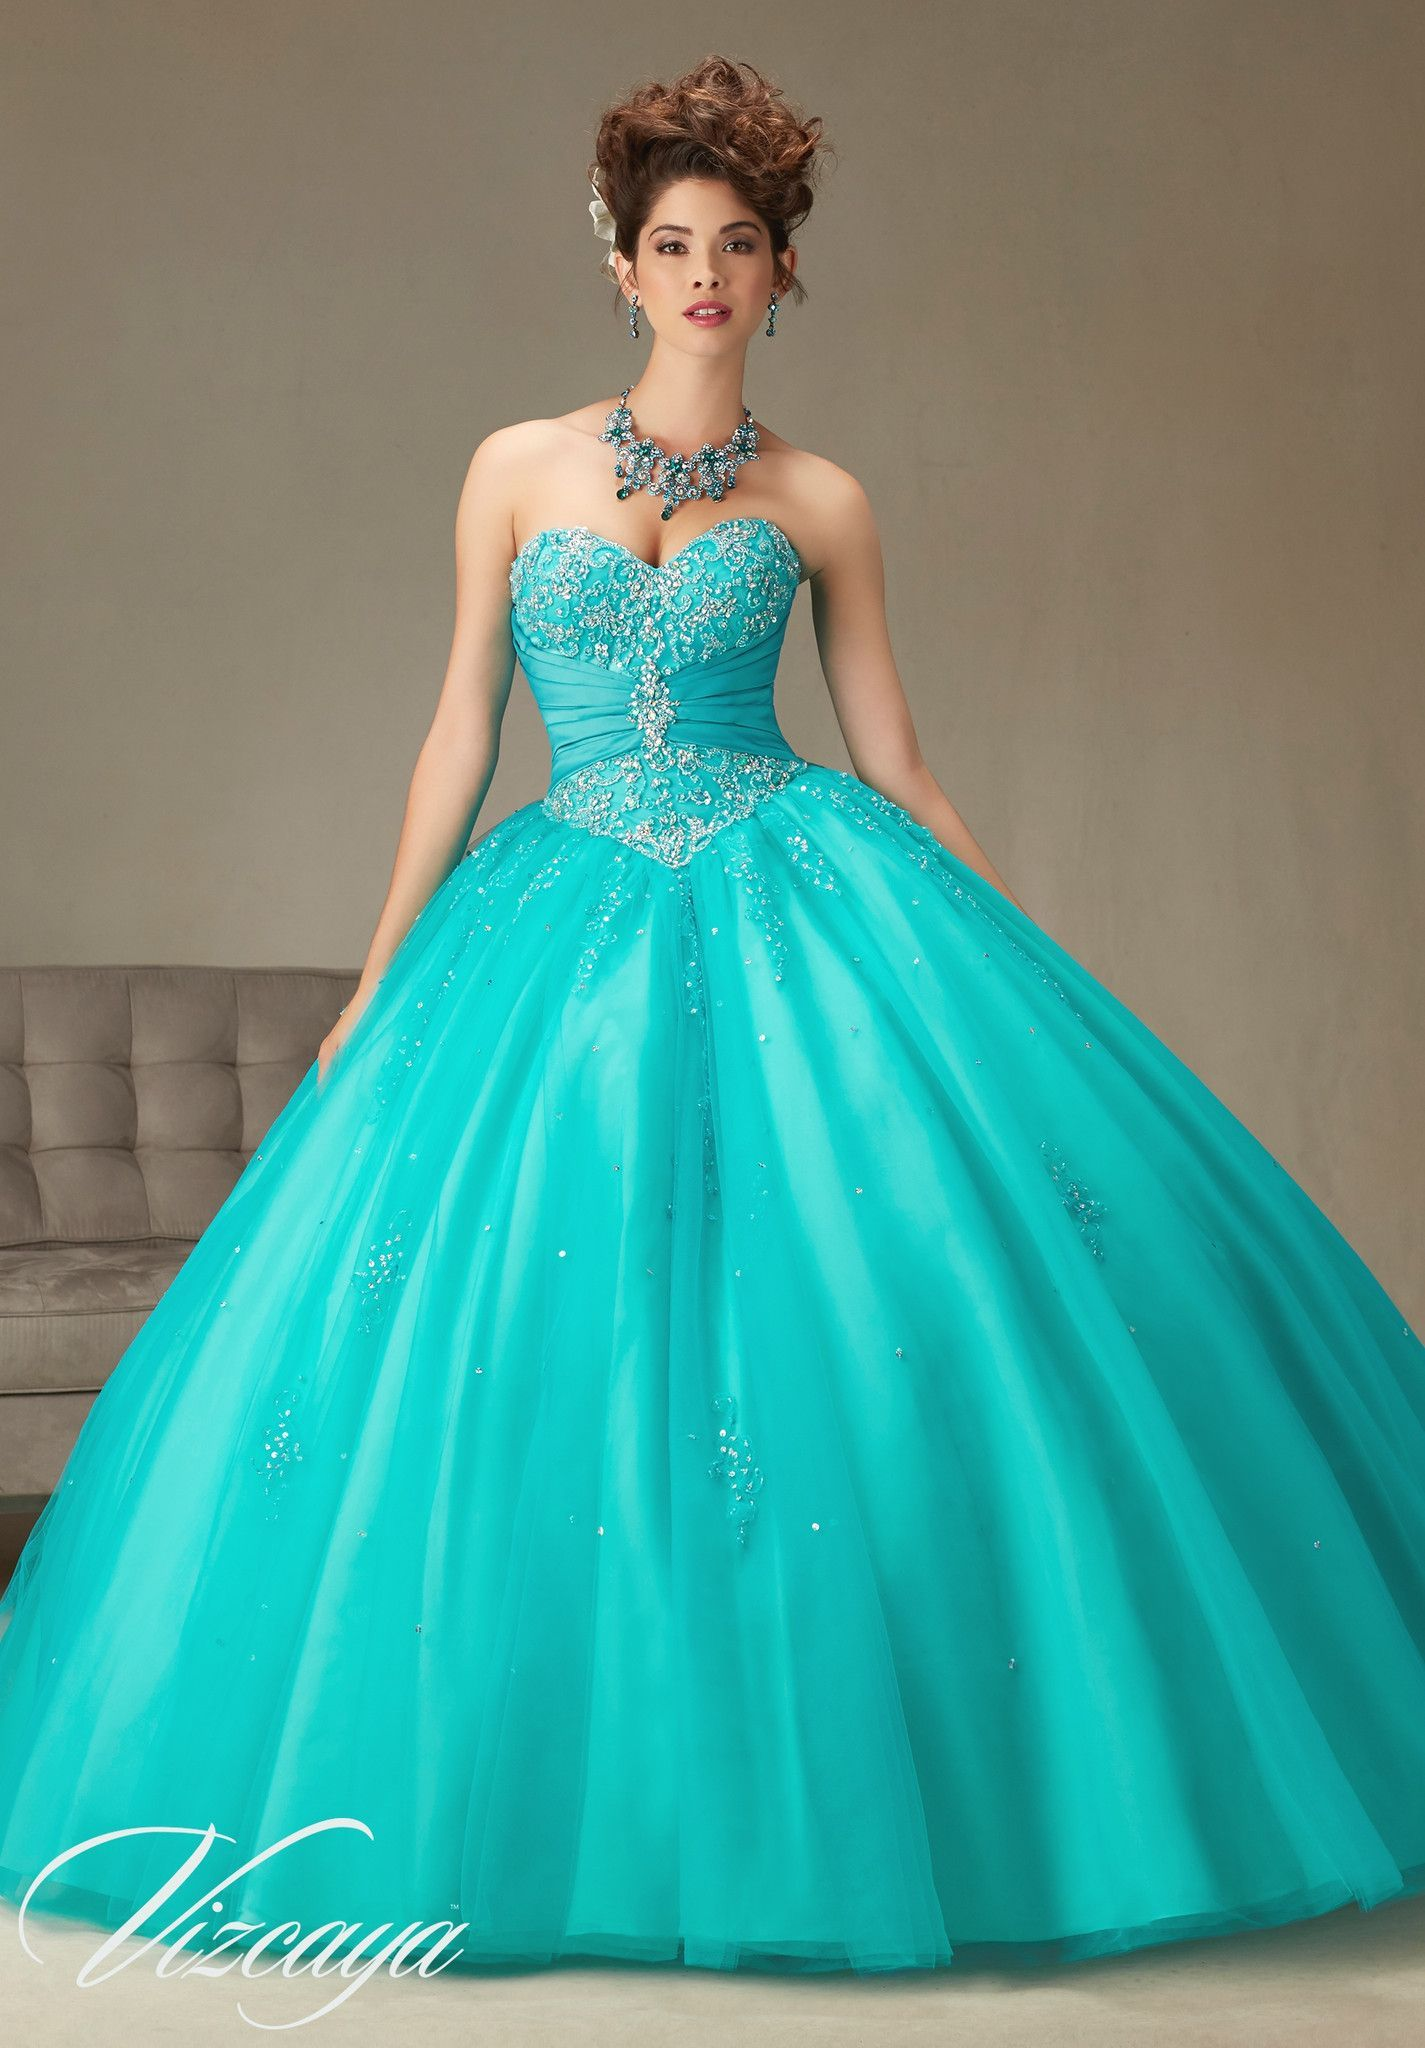 Blue aqua quinceanera dresses recommend to wear for everyday in 2019